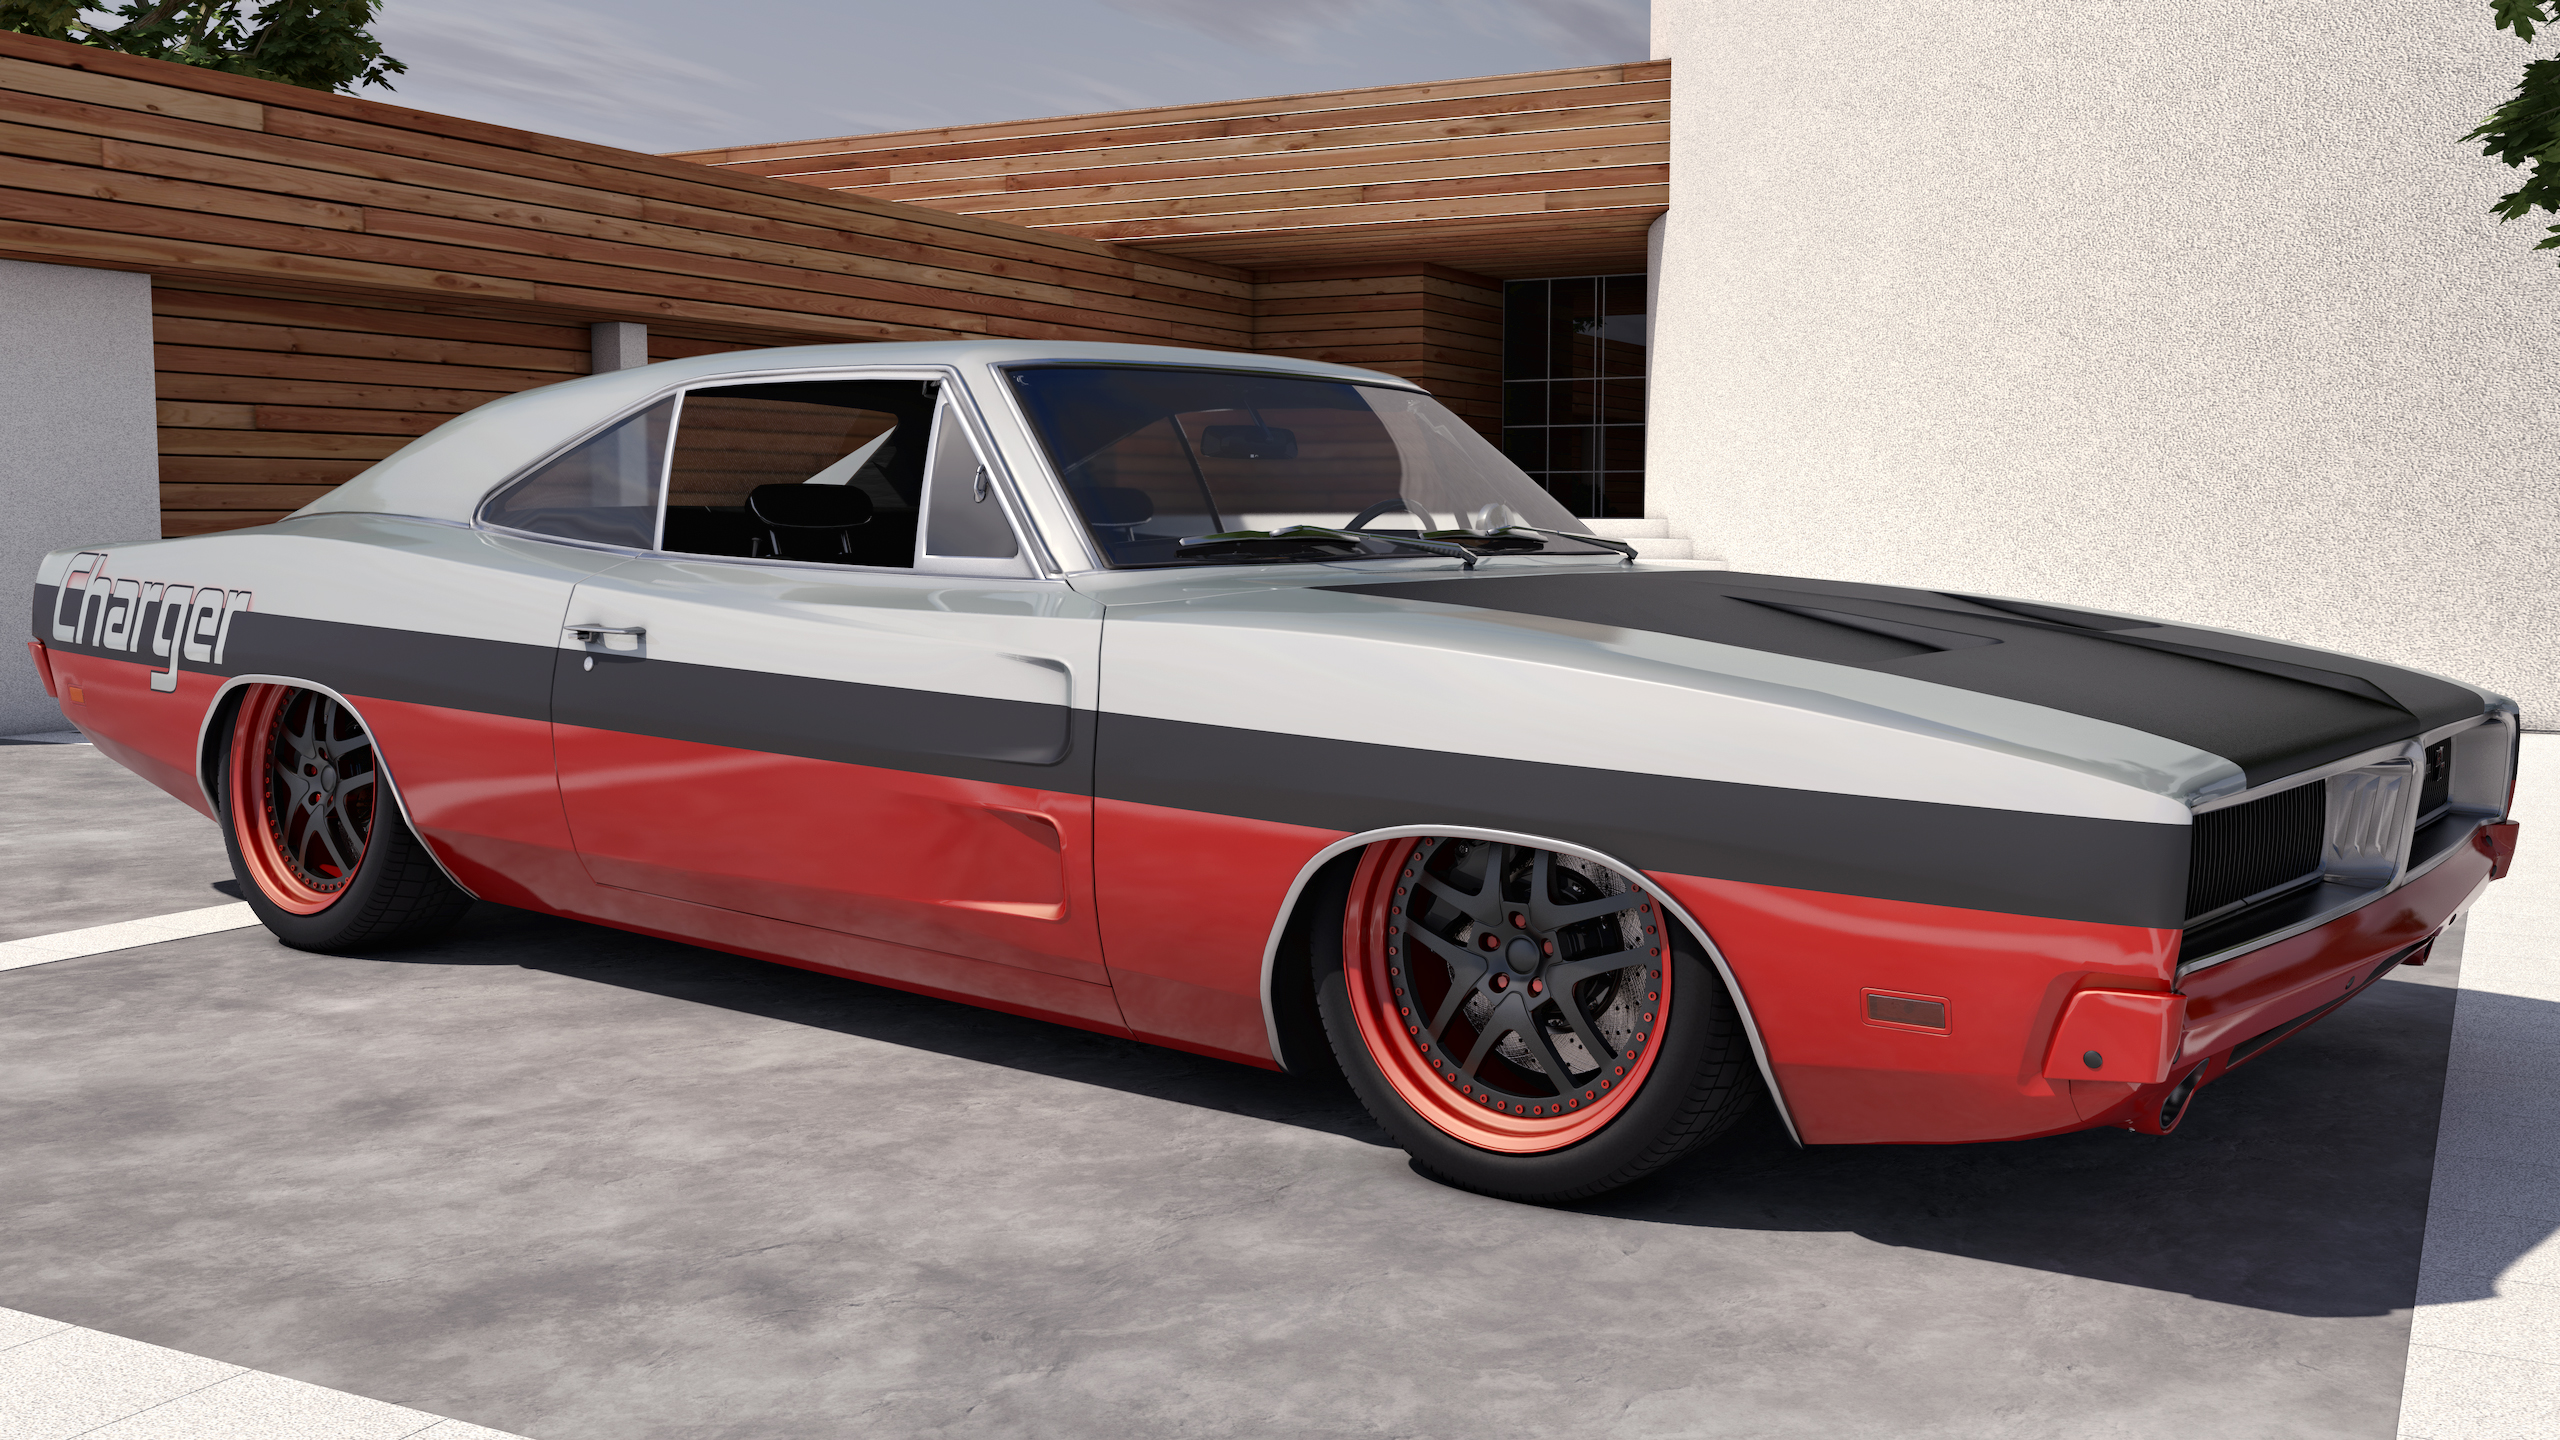 3d 1969 dodge charger r t coches clasicos de hoy. Black Bedroom Furniture Sets. Home Design Ideas